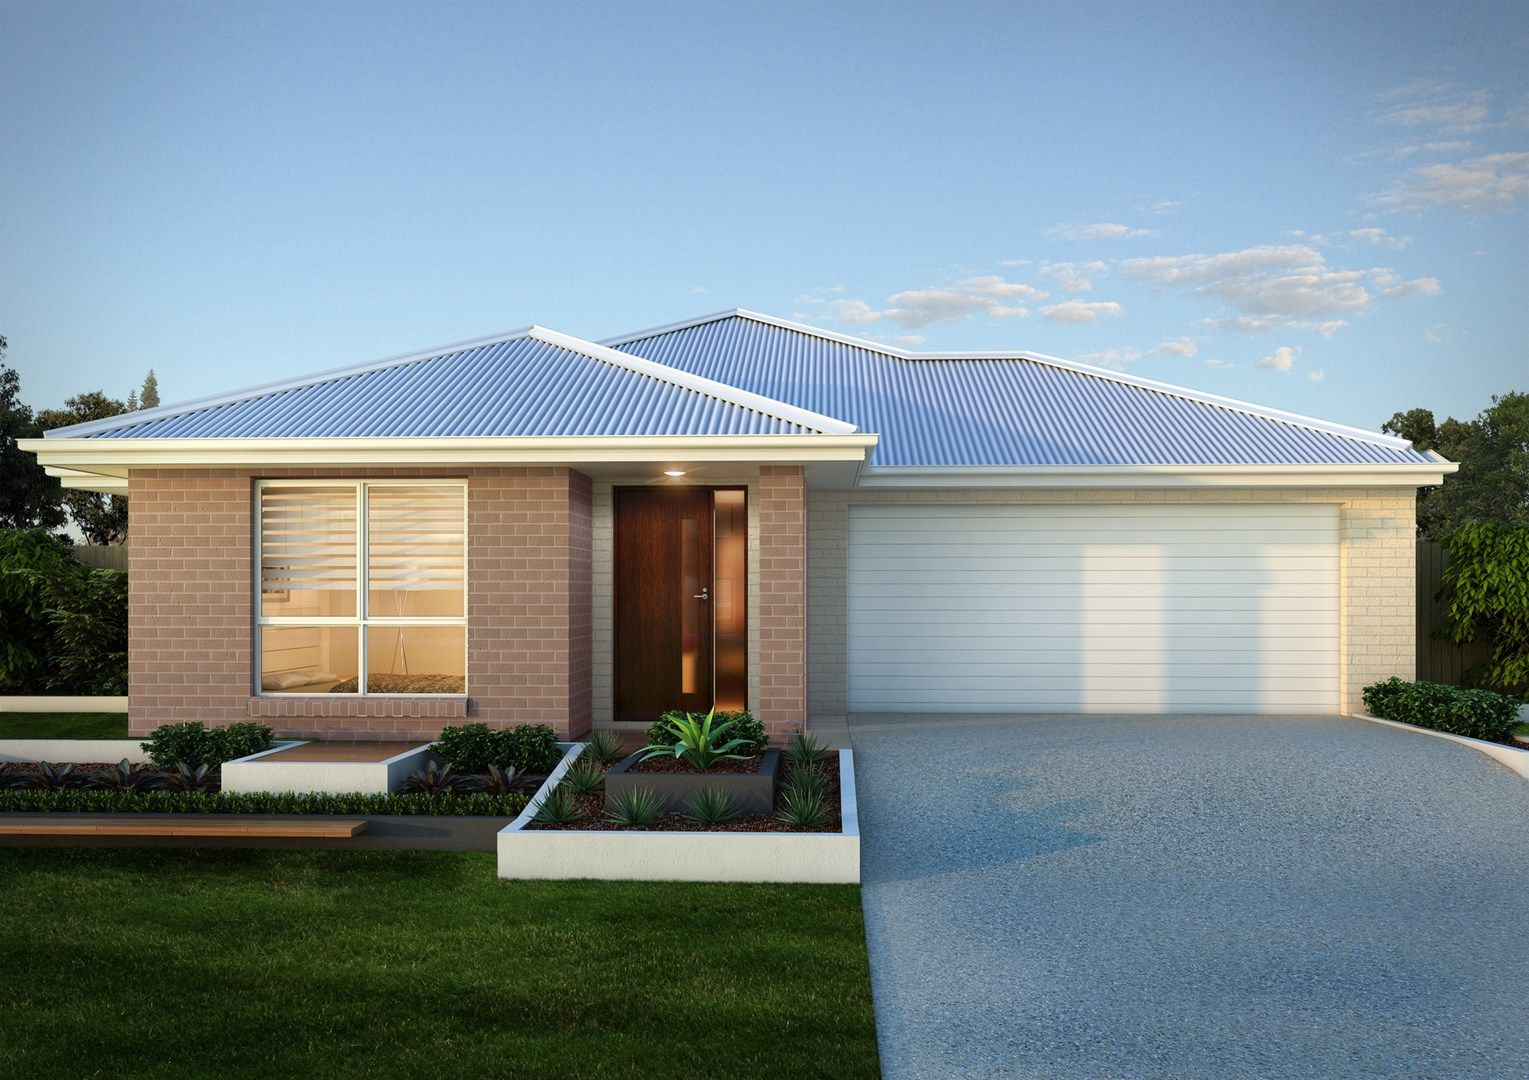 Lot 307 Bottlebrush Avenue, Mornington Heights Estate, Gunnedah NSW 2380, Image 0